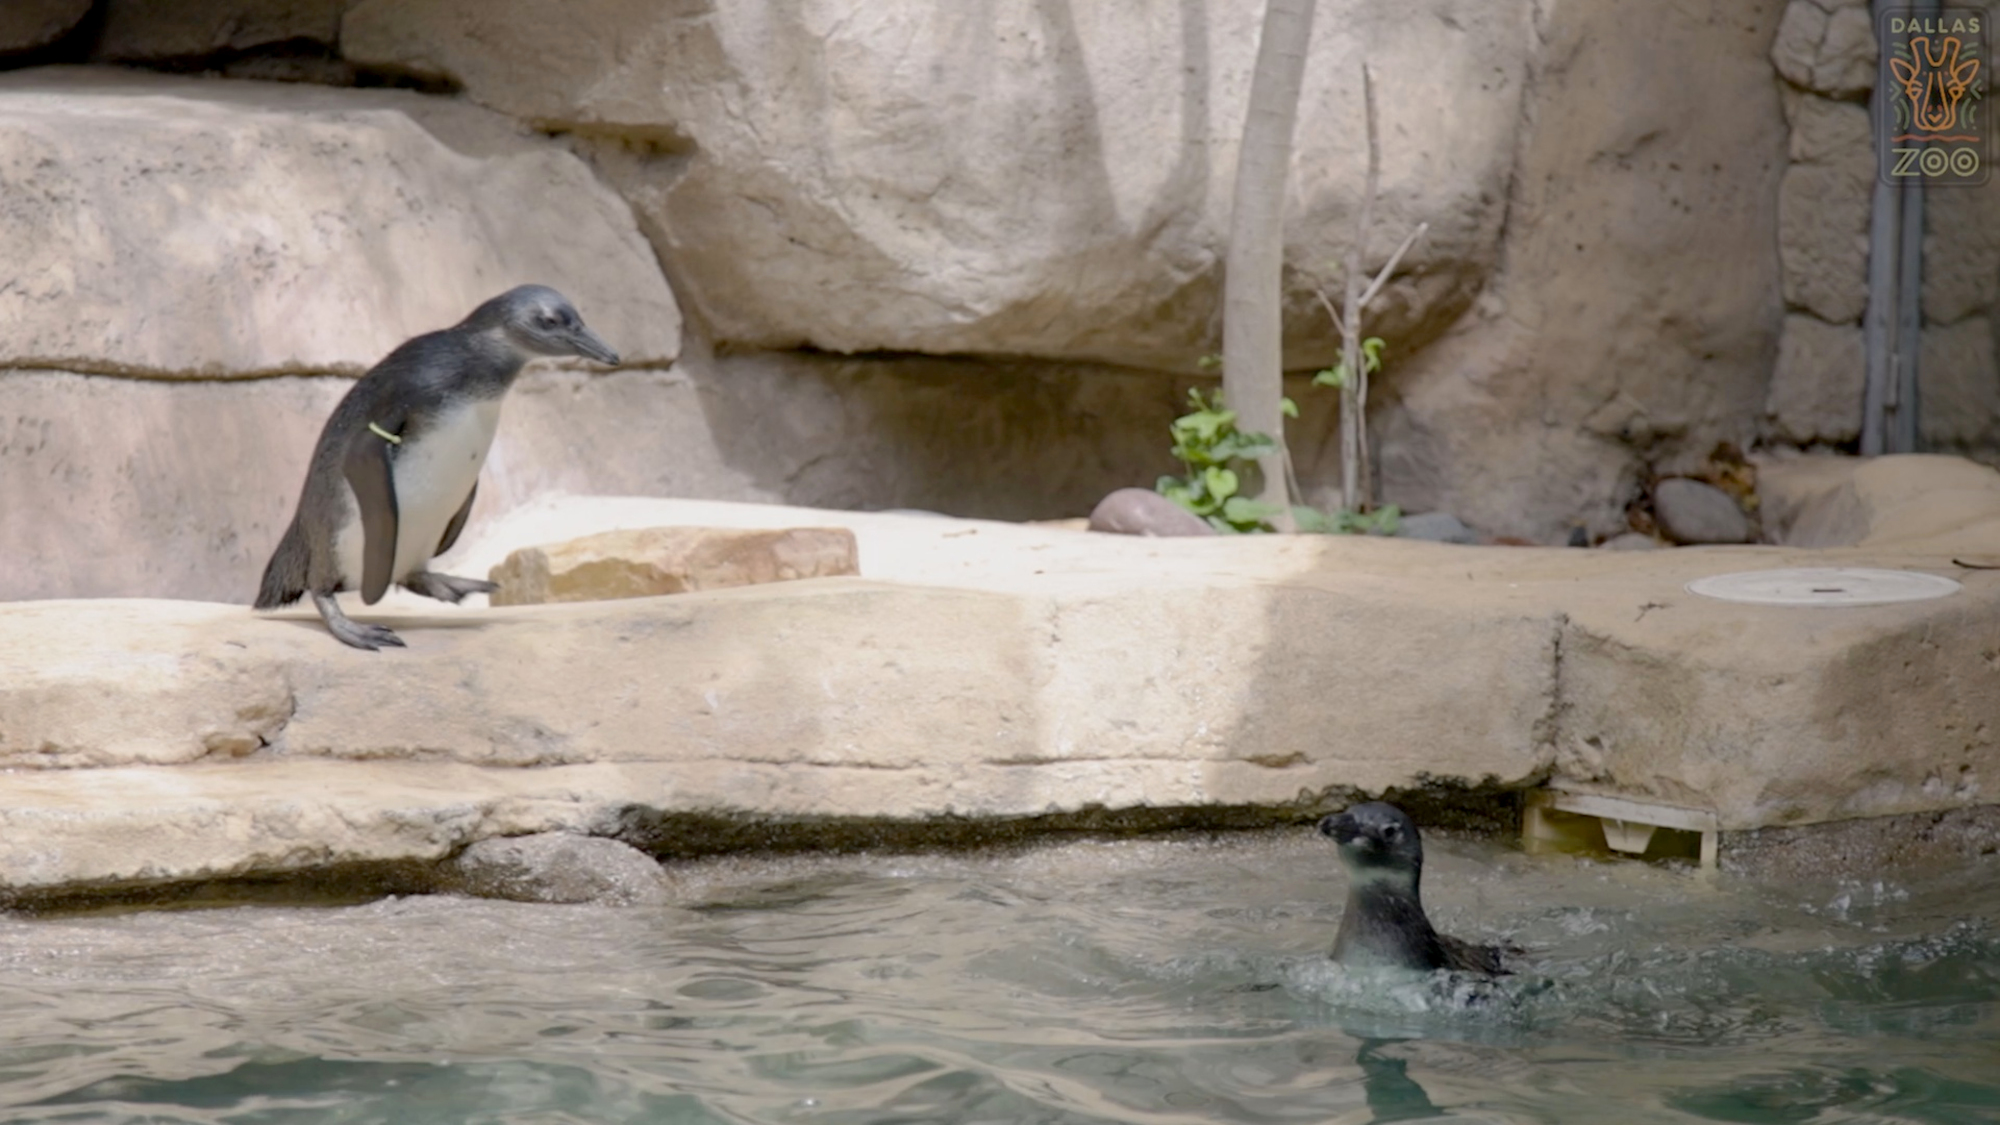 VIDEO: Chickening Out: Penguin Chicks Need Swimming Lessons From Keeper